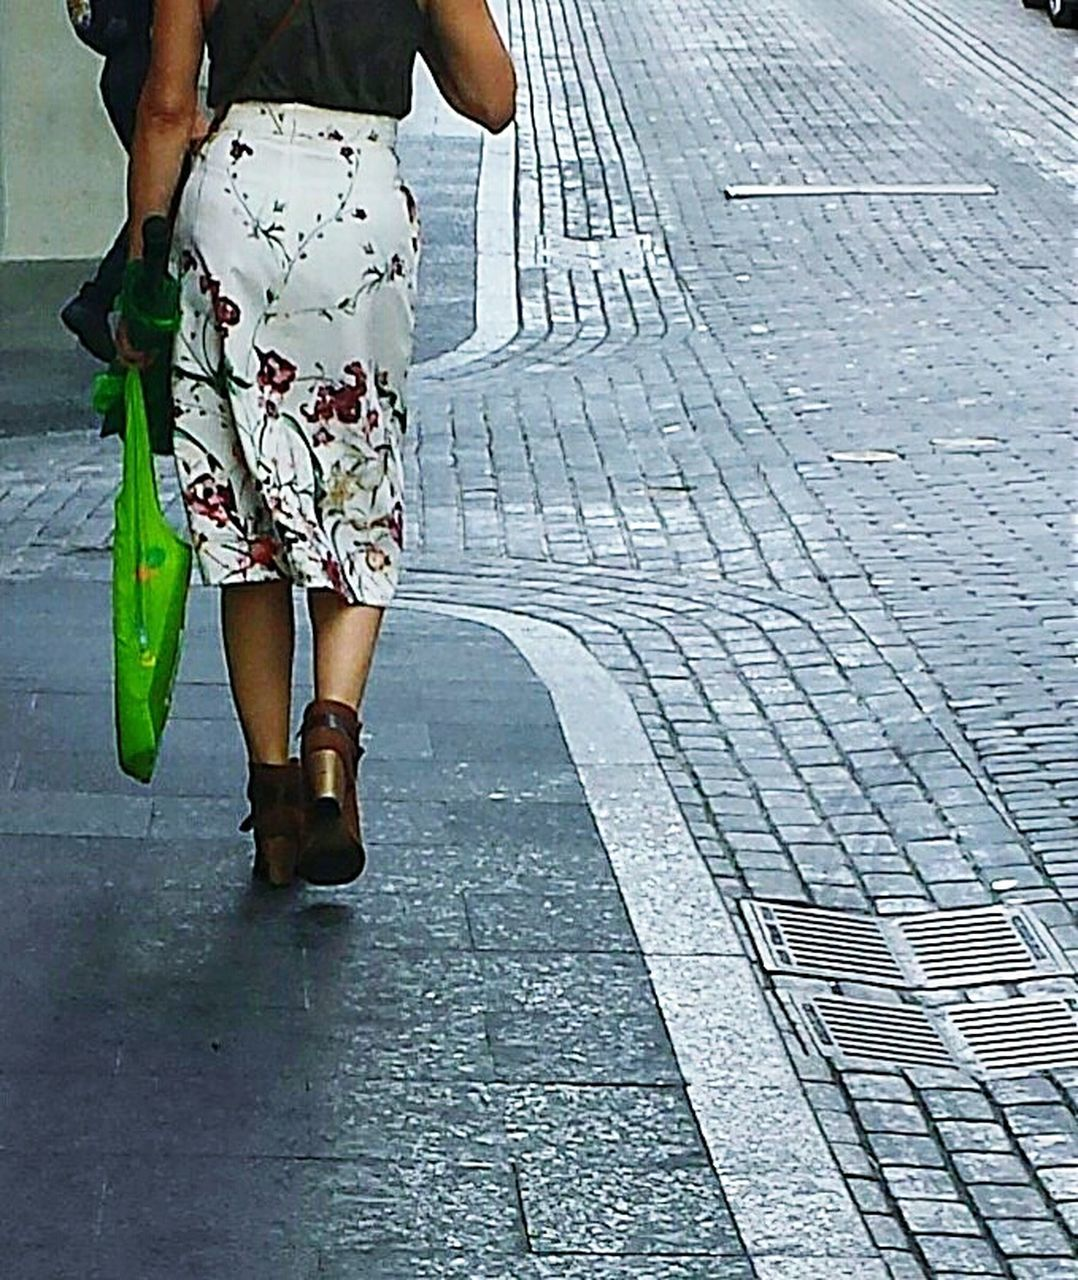 low section, walking, human leg, city street, human body part, street, outdoors, adult, one person, shorts, sidewalk, day, sandal, people, shoe, casual clothing, one woman only, adults only, only women, leg, city, standing, women, real people, young adult